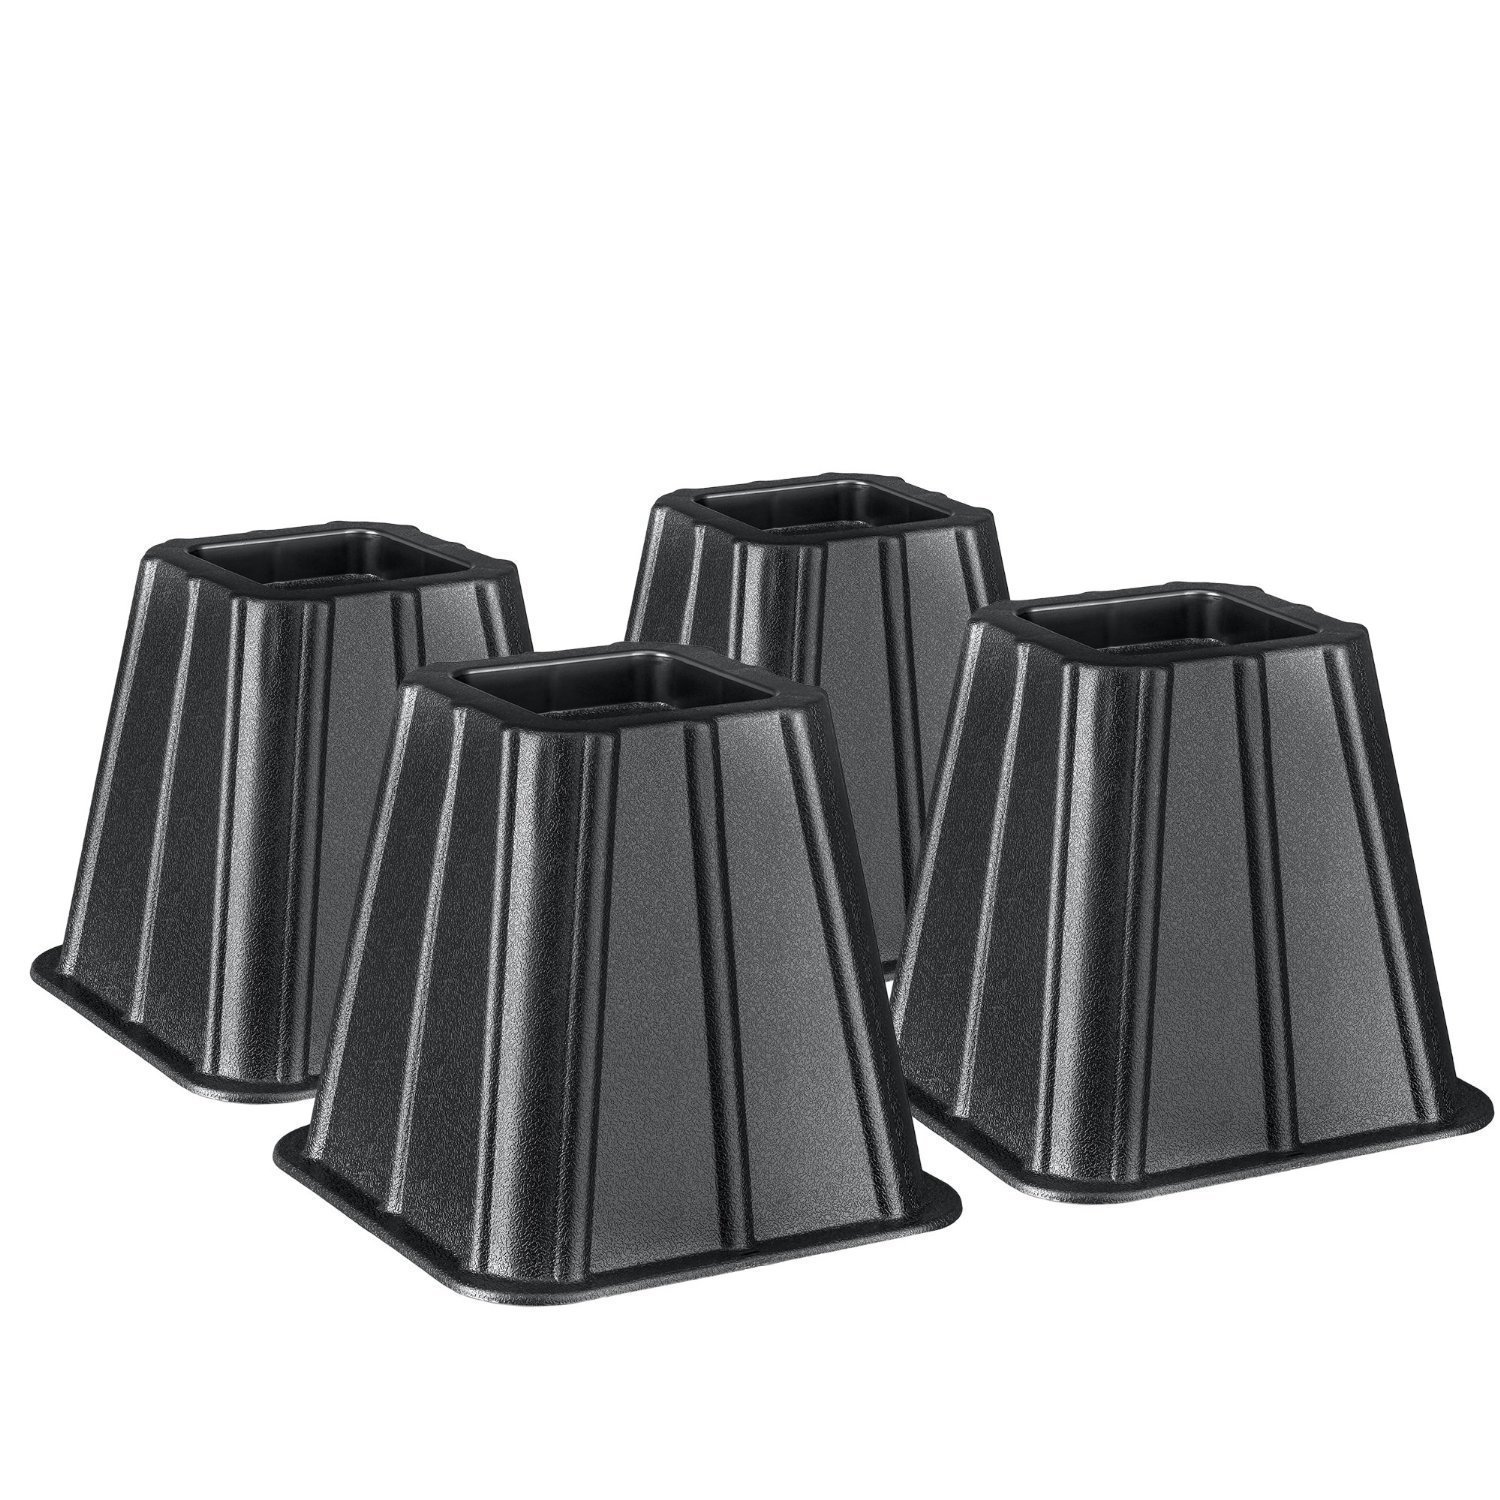 Set of 4 Bed Risers Raise Furniture Create Underbed Storage, Total Height: 6; Base: 6.75L X 6.75W; Top: 4.25L X 4.25W; Inset For Bed Foot: 3L x.., By Starplast